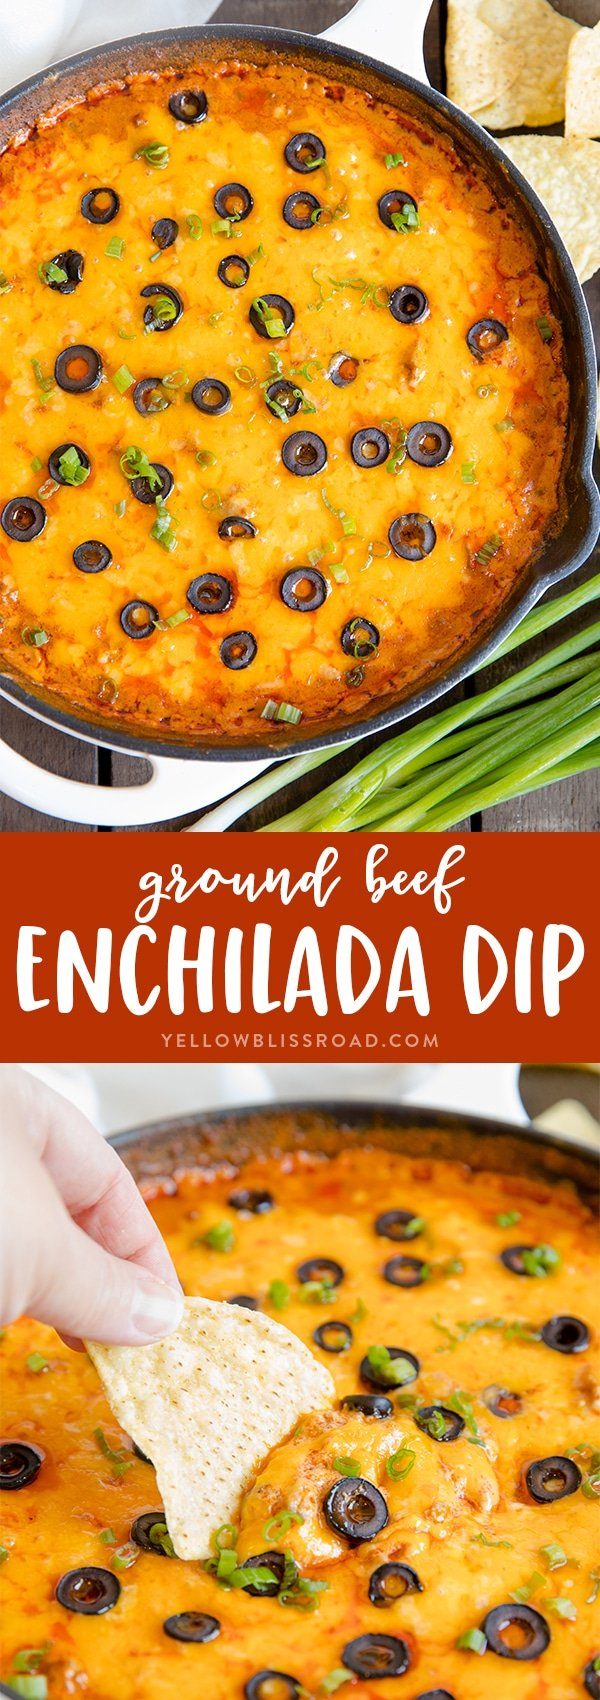 Cheesy Ground Beef Enchilada Dip in a Cast Iron Skillet | Game Day food | Appetizer